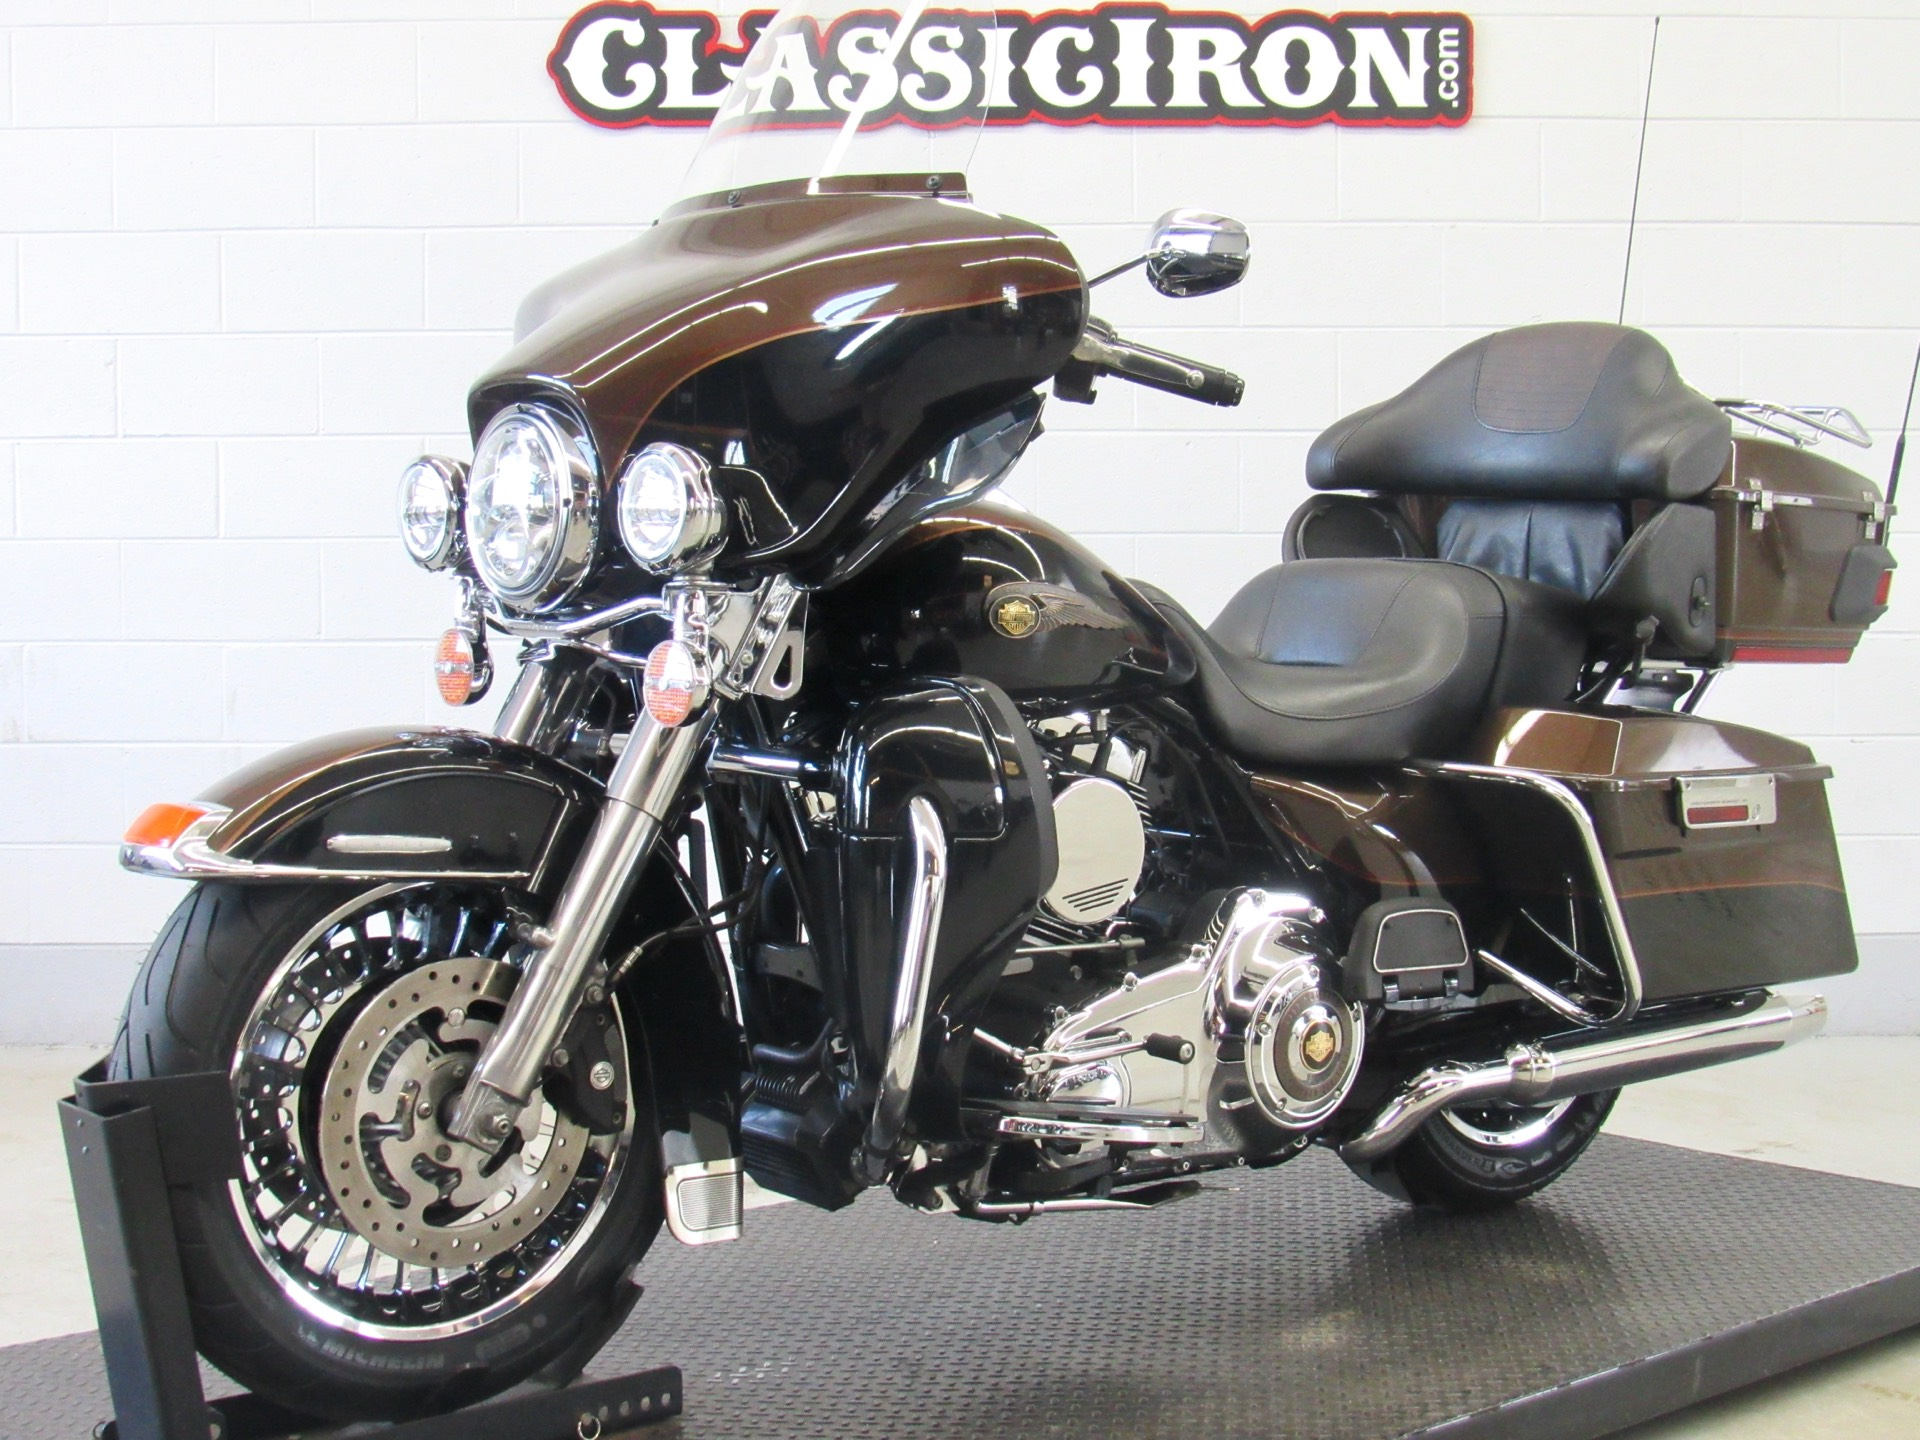 2013 Harley-Davidson Electra Glide® Ultra Limited 110th Anniversary Edition in Fredericksburg, Virginia - Photo 3